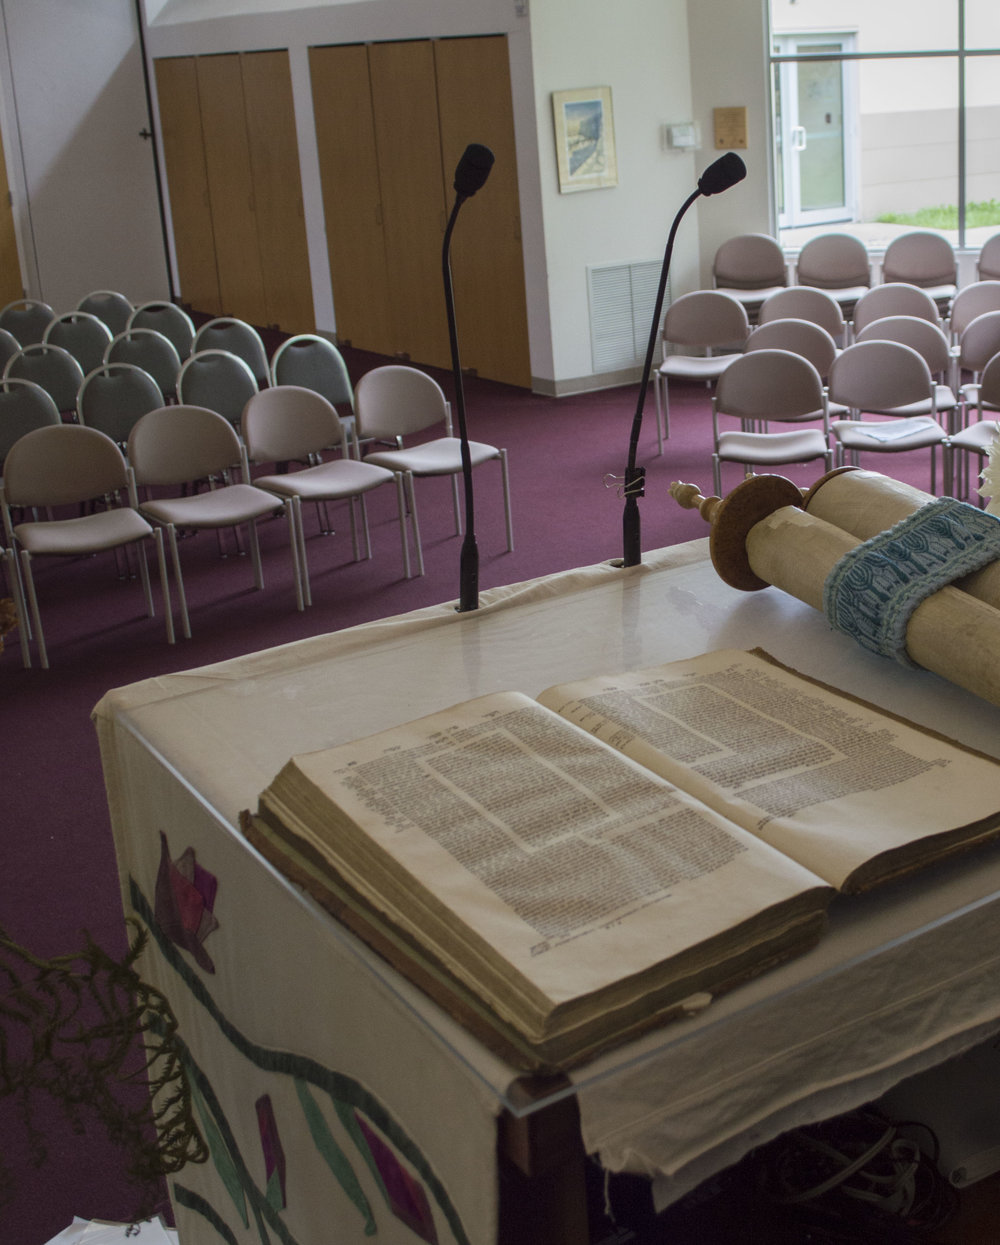 "Book on Left / Holocaust Talmud, written in Vienna and found in Austria. ""This has seen more hate and more humanity than we'll ever know,"" Rabbi Abram preached in last week's sermon."